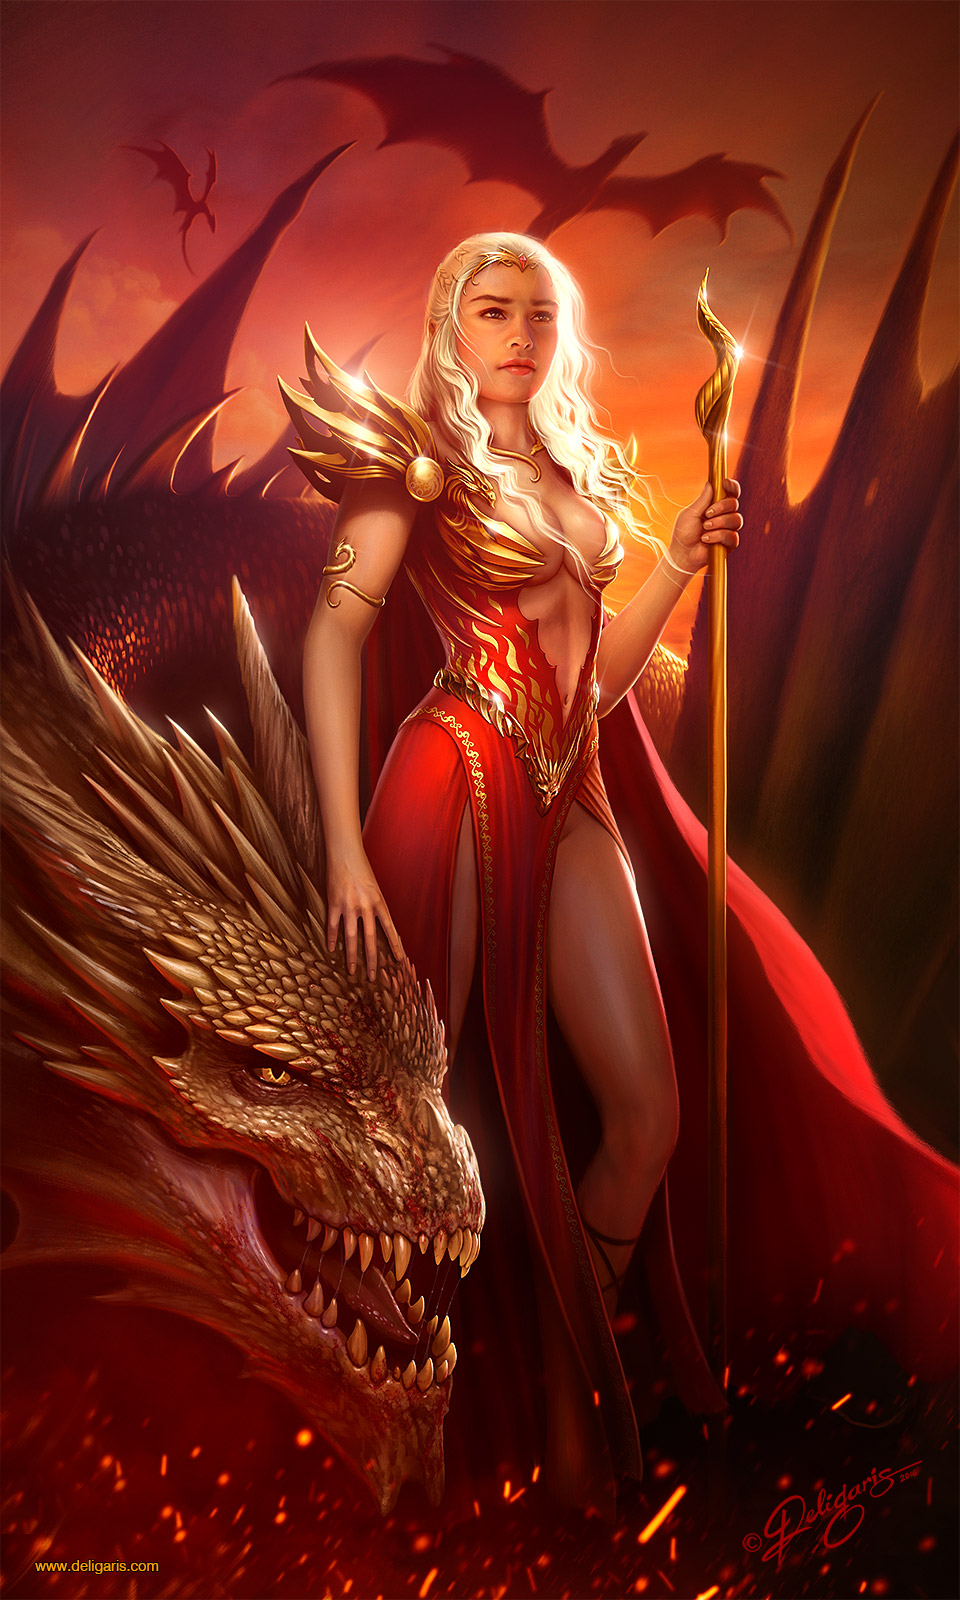 daenerys_j_by_deligaris-dafq2gq.jpg